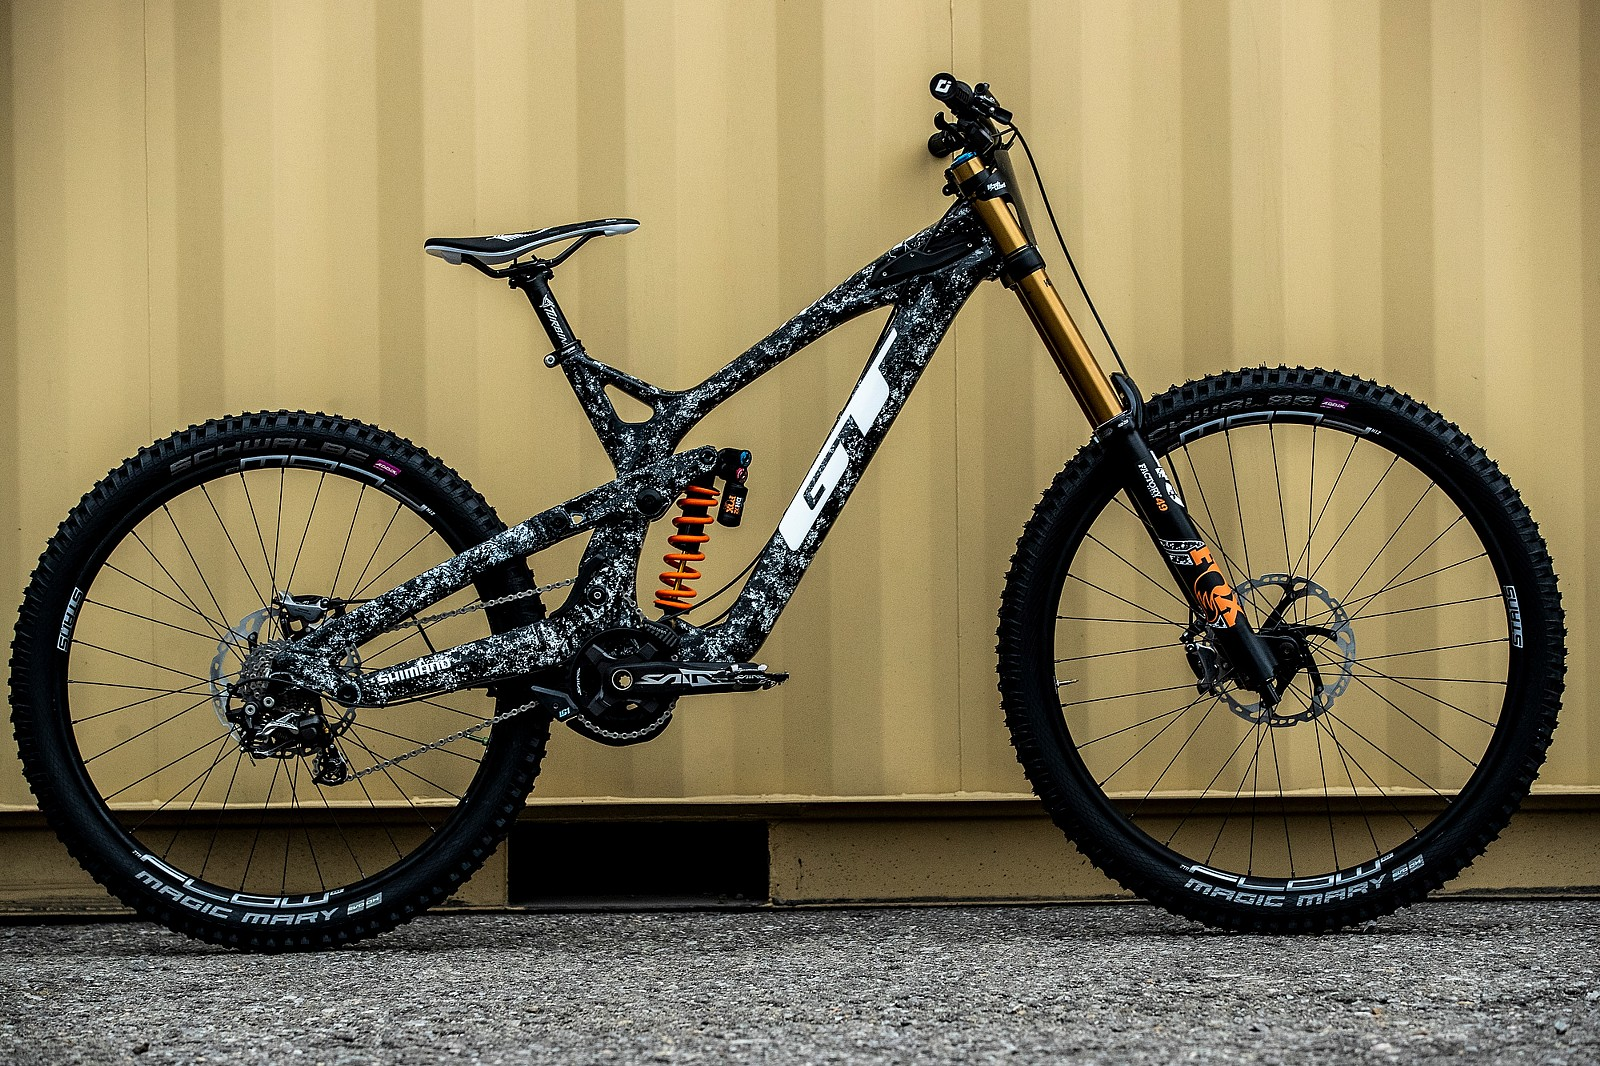 Wyn Masters' GT Fury For World Championships - GT Bicycles World Championships DH Race Bikes - Mountain Biking Pictures - Vital MTB